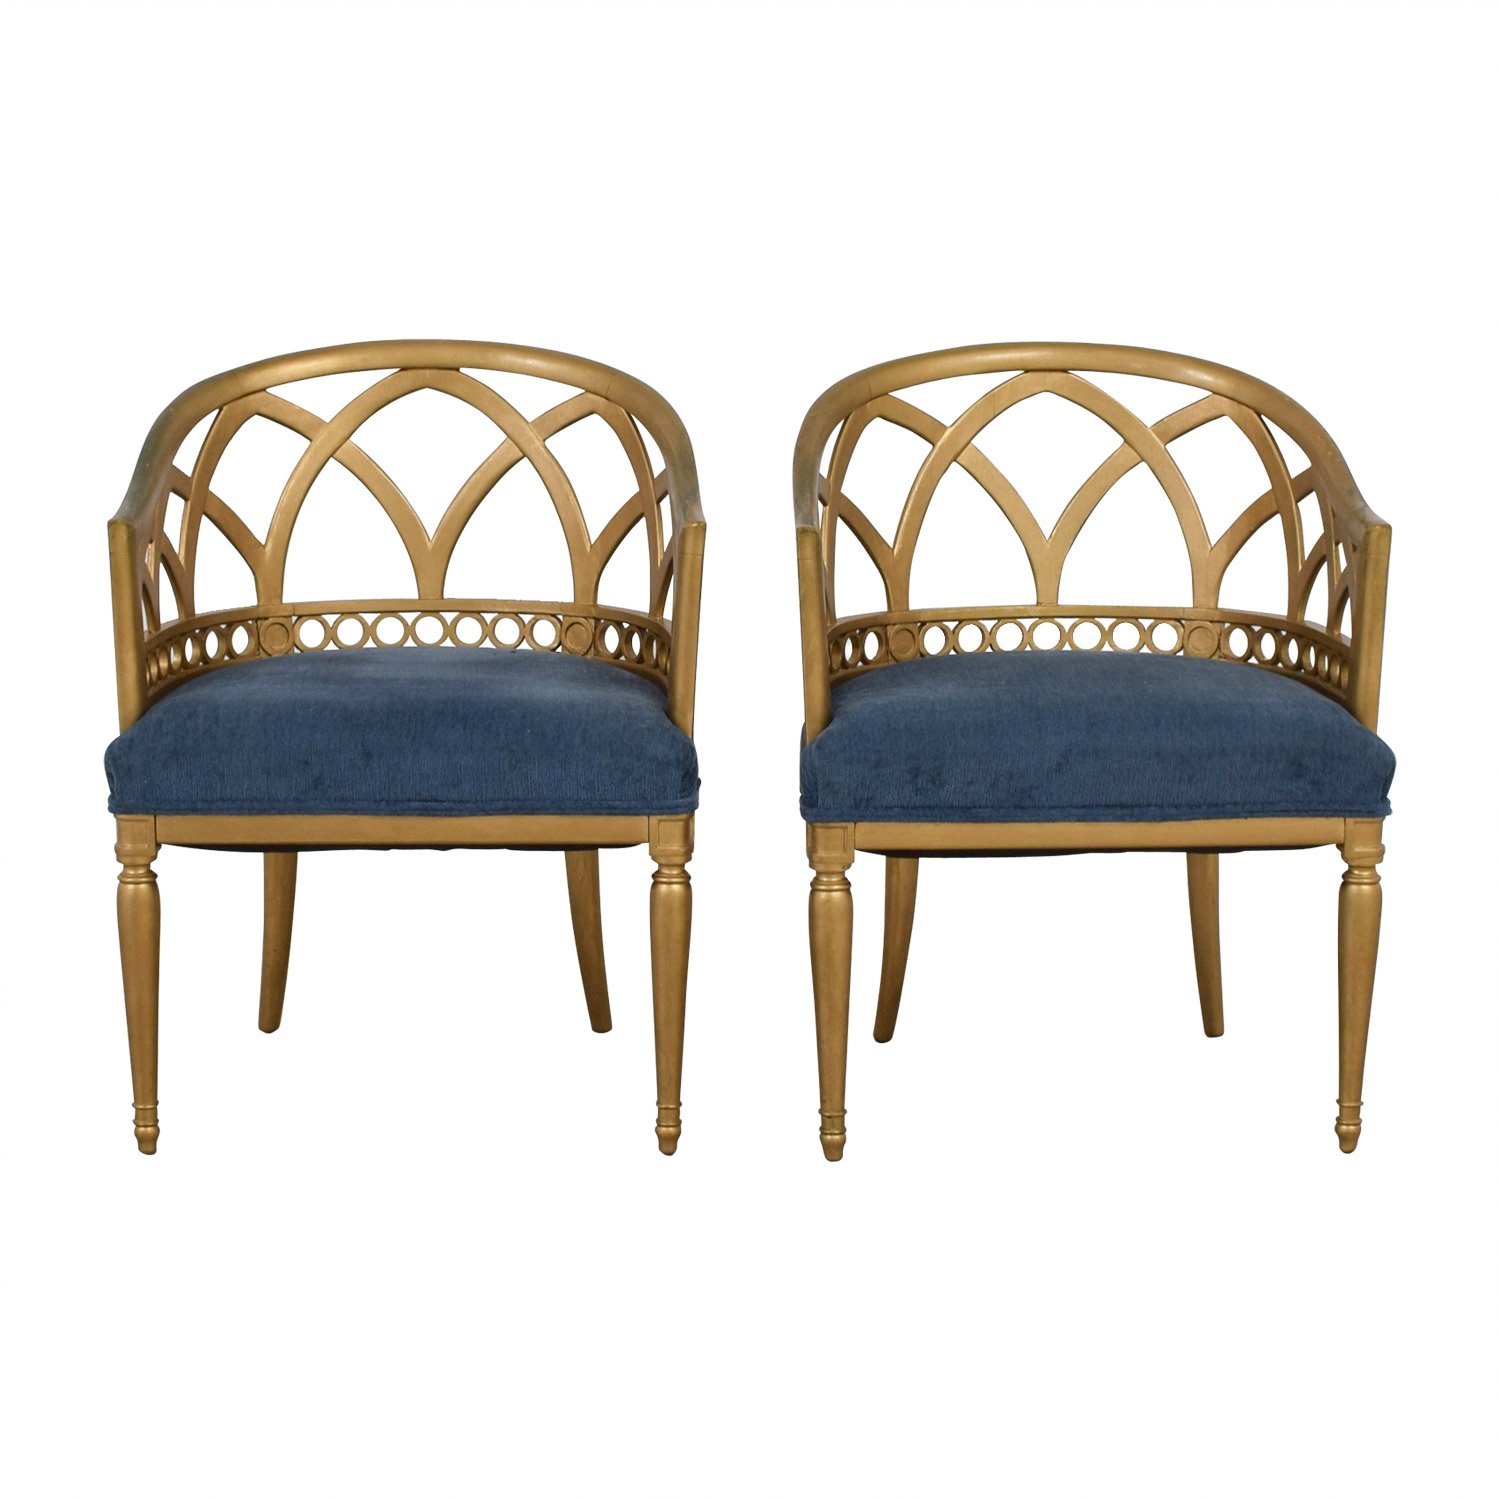 Regency Blue and Gold Accent Chairs on sale